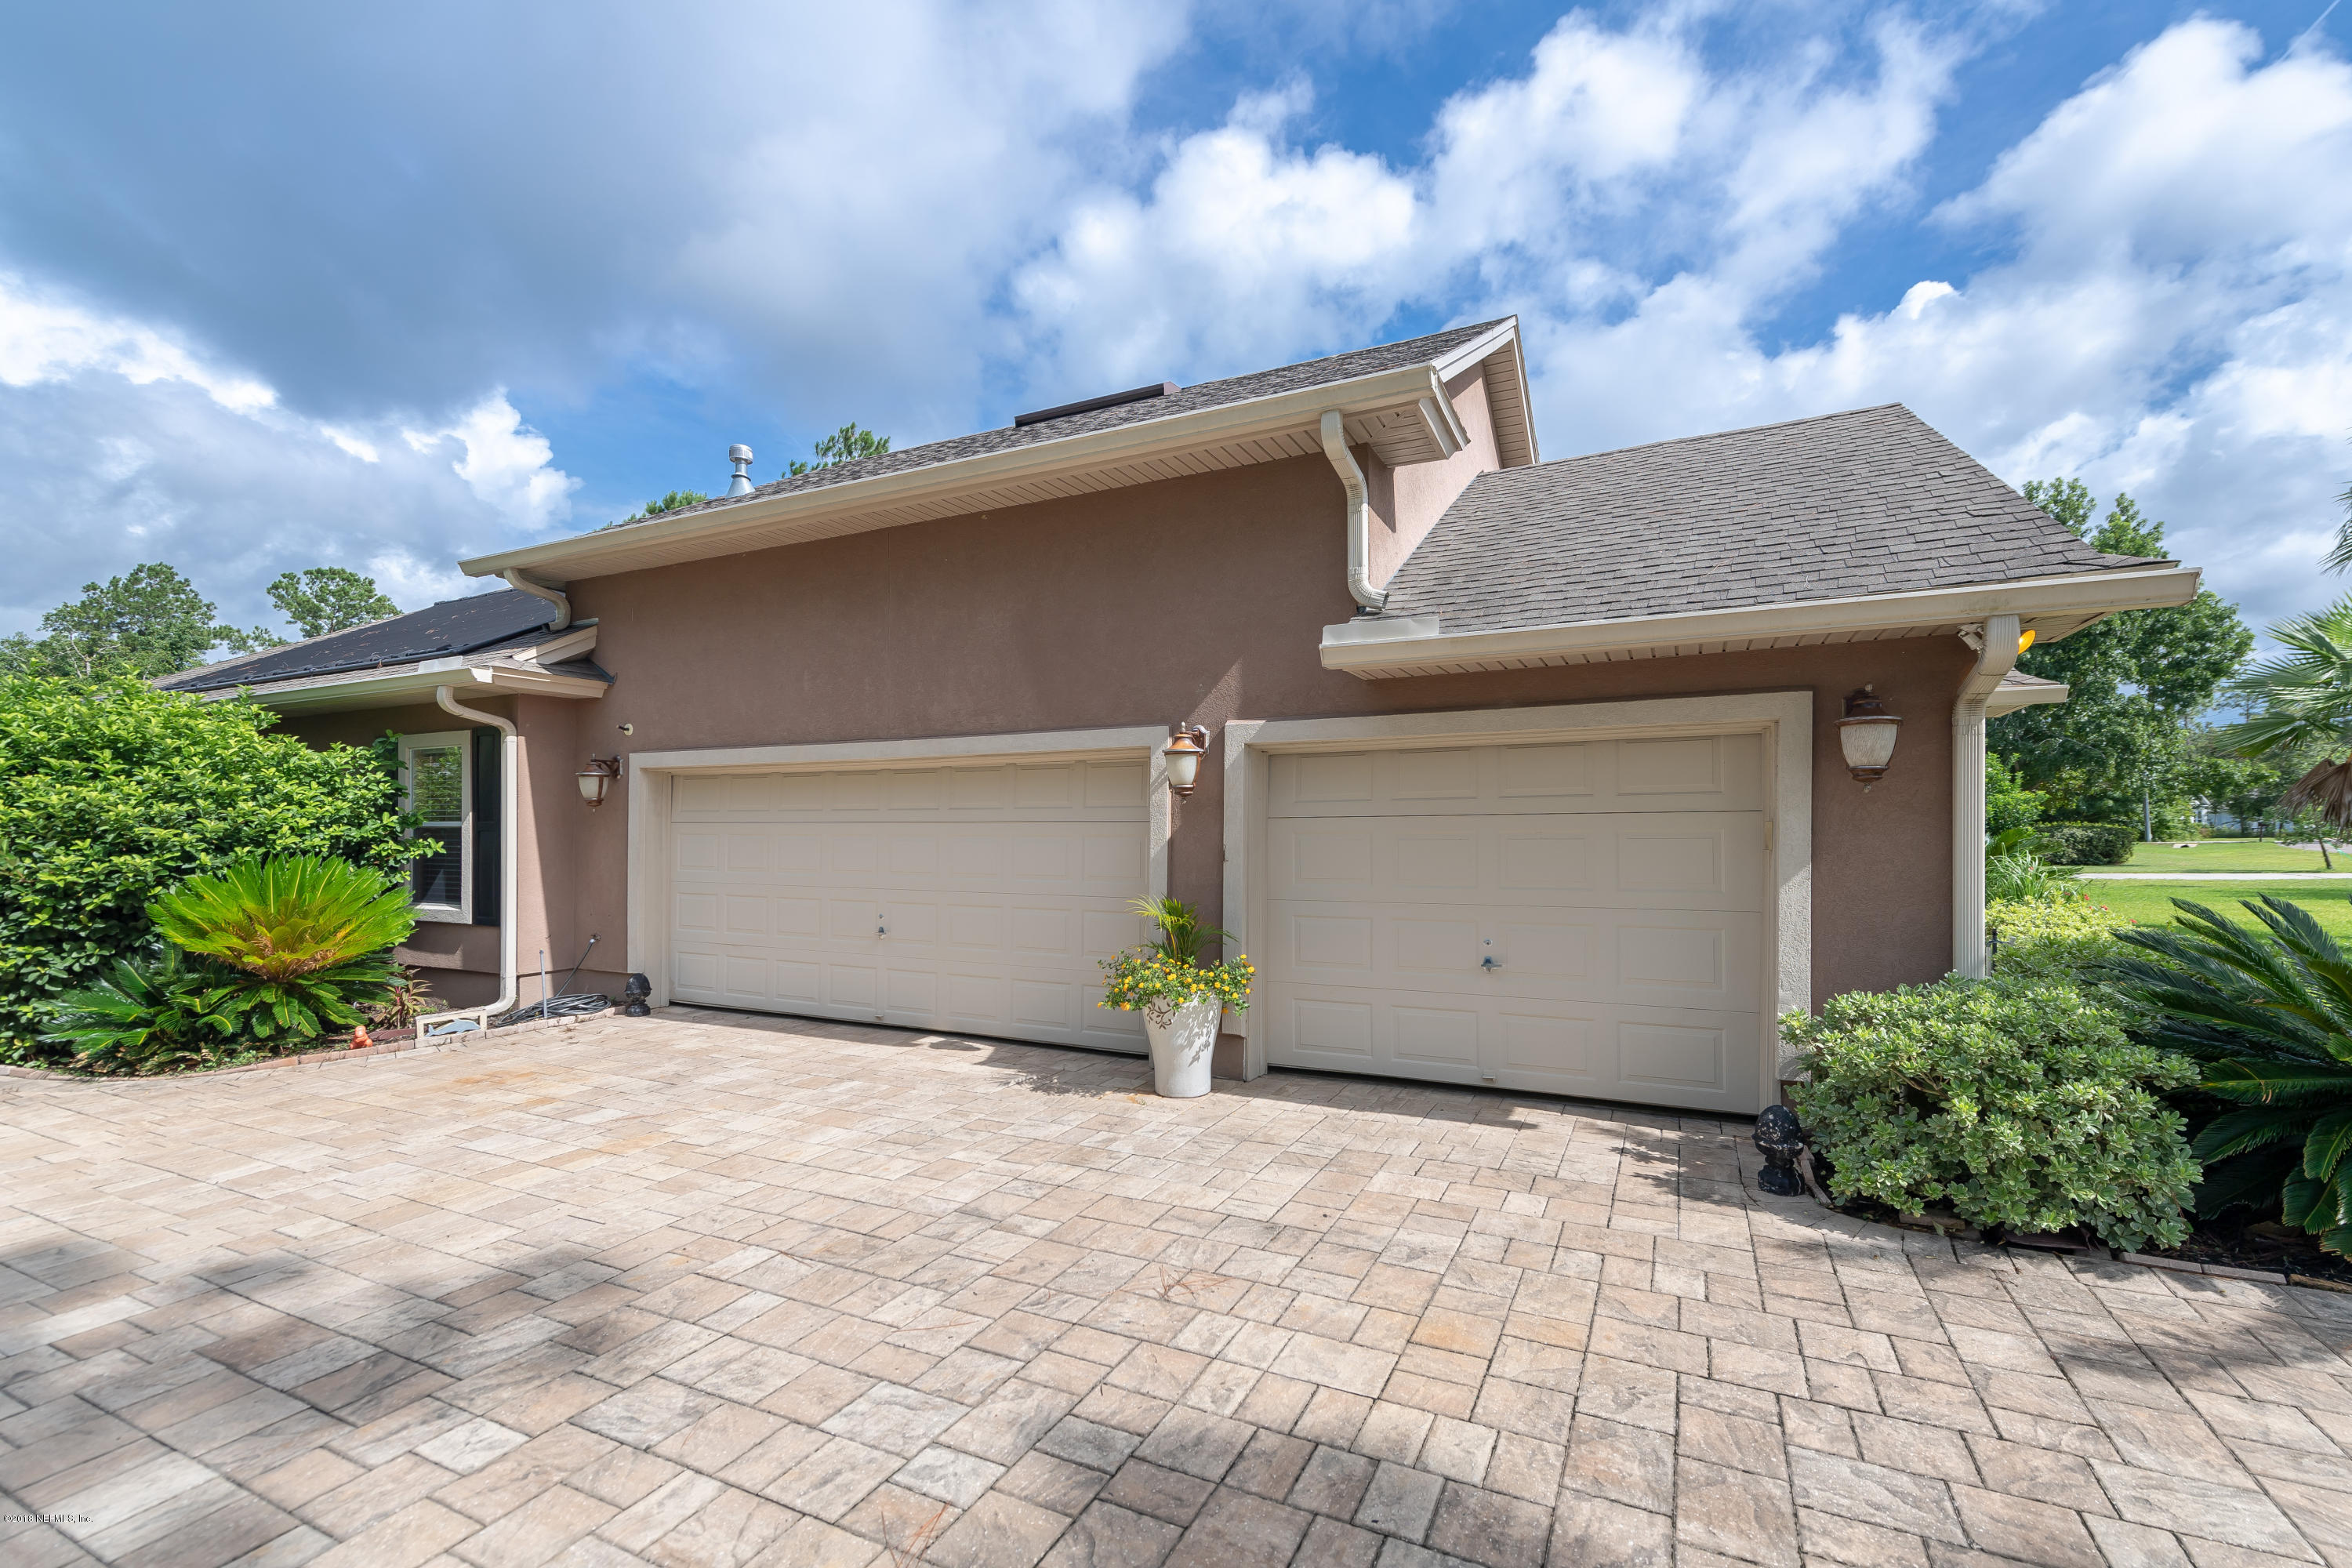 321 VICKI TOWERS, ST AUGUSTINE, FLORIDA 32092, 5 Bedrooms Bedrooms, ,4 BathroomsBathrooms,Residential - single family,For sale,VICKI TOWERS,952033